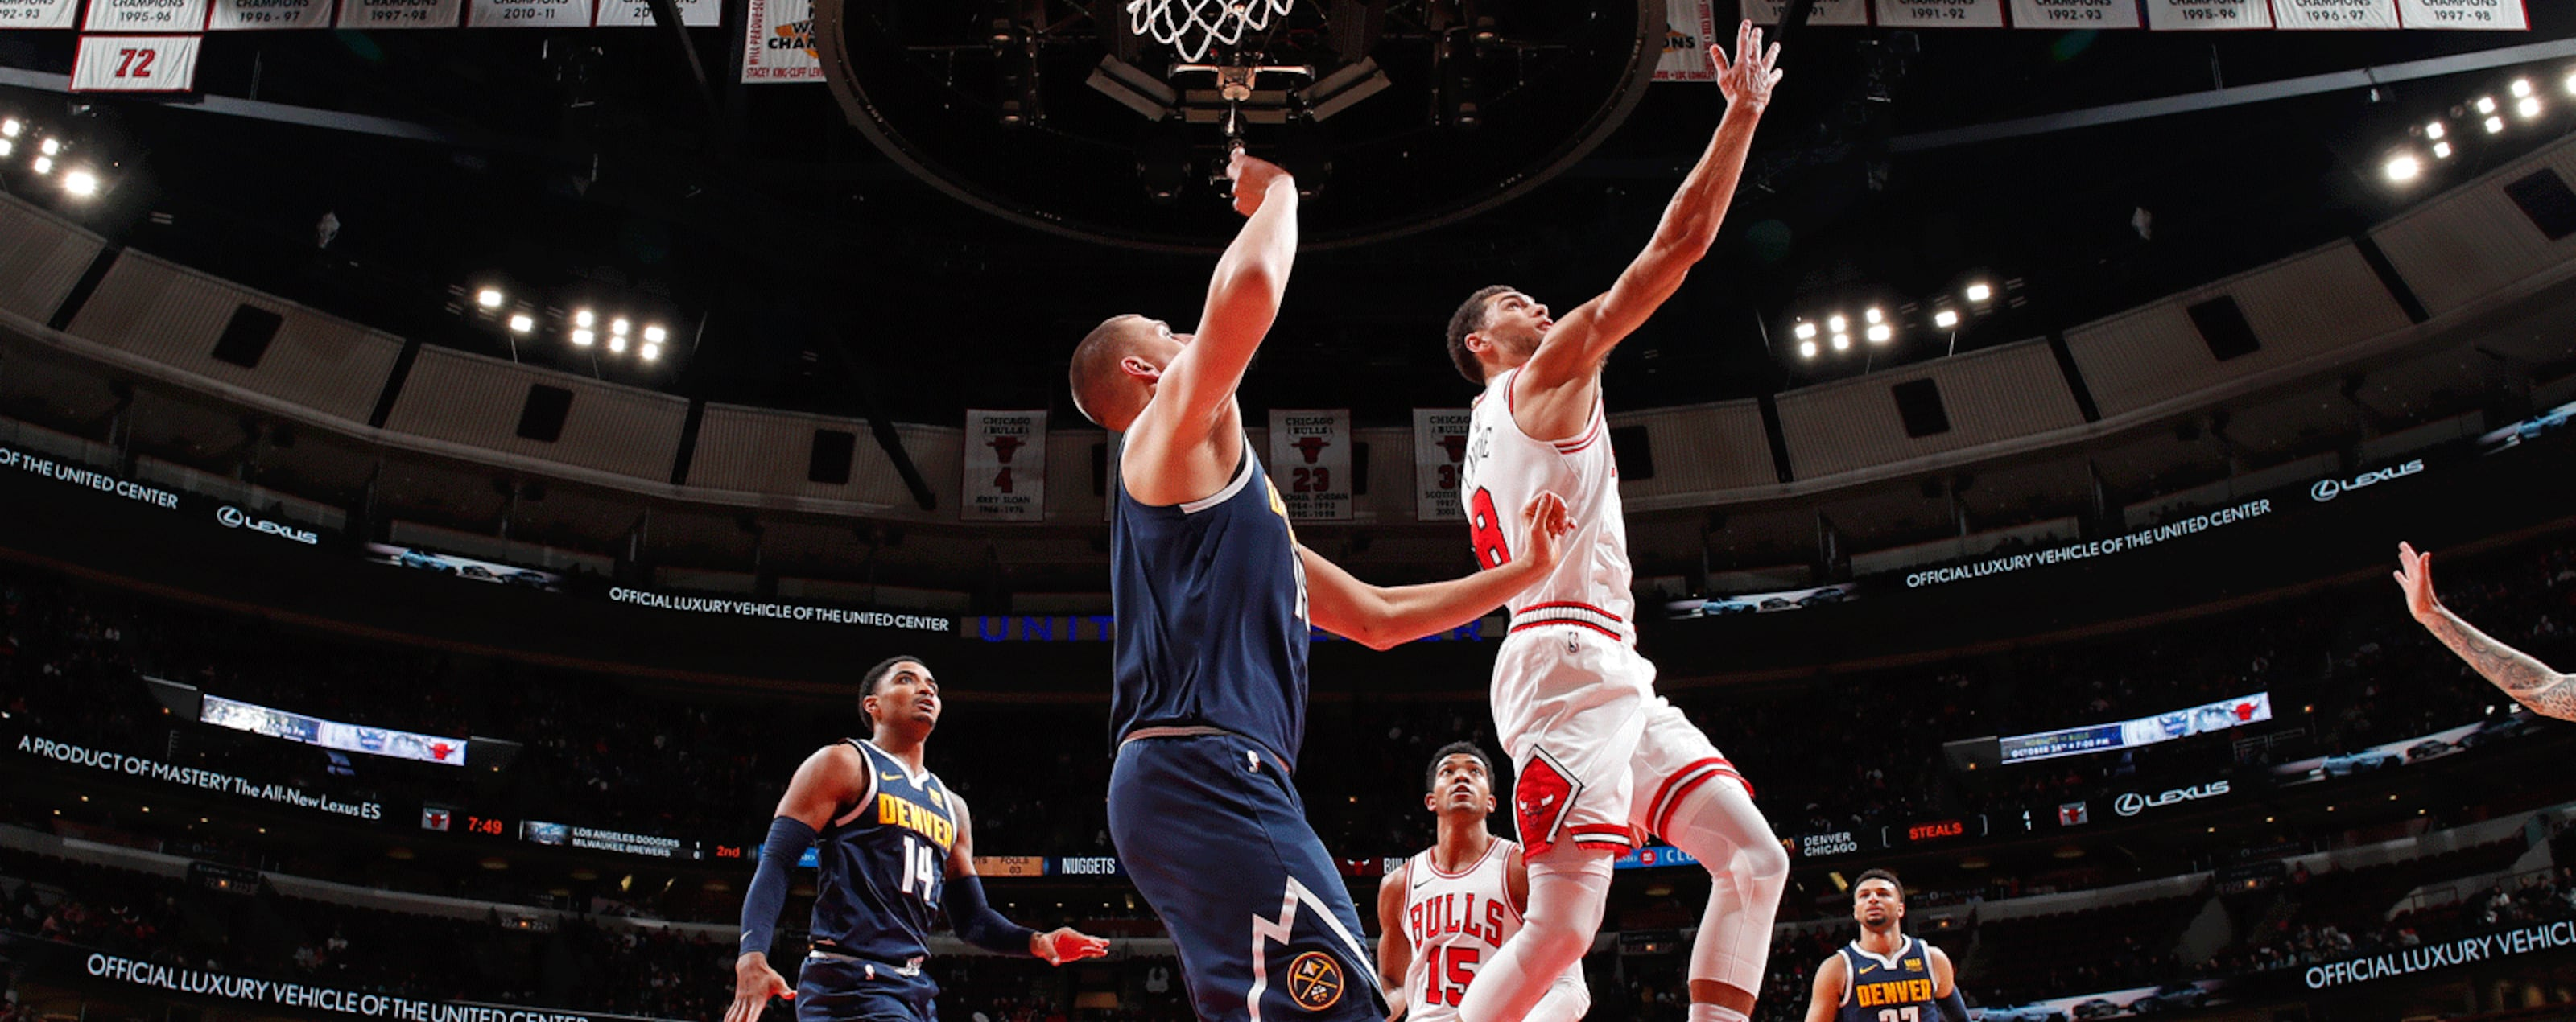 Zach LaVine #8 of the Chicago Bulls drives to the basket against the Denver Nuggets during a pre-season game on October 12, 2018 at the United Center in Chicago, Illinois.